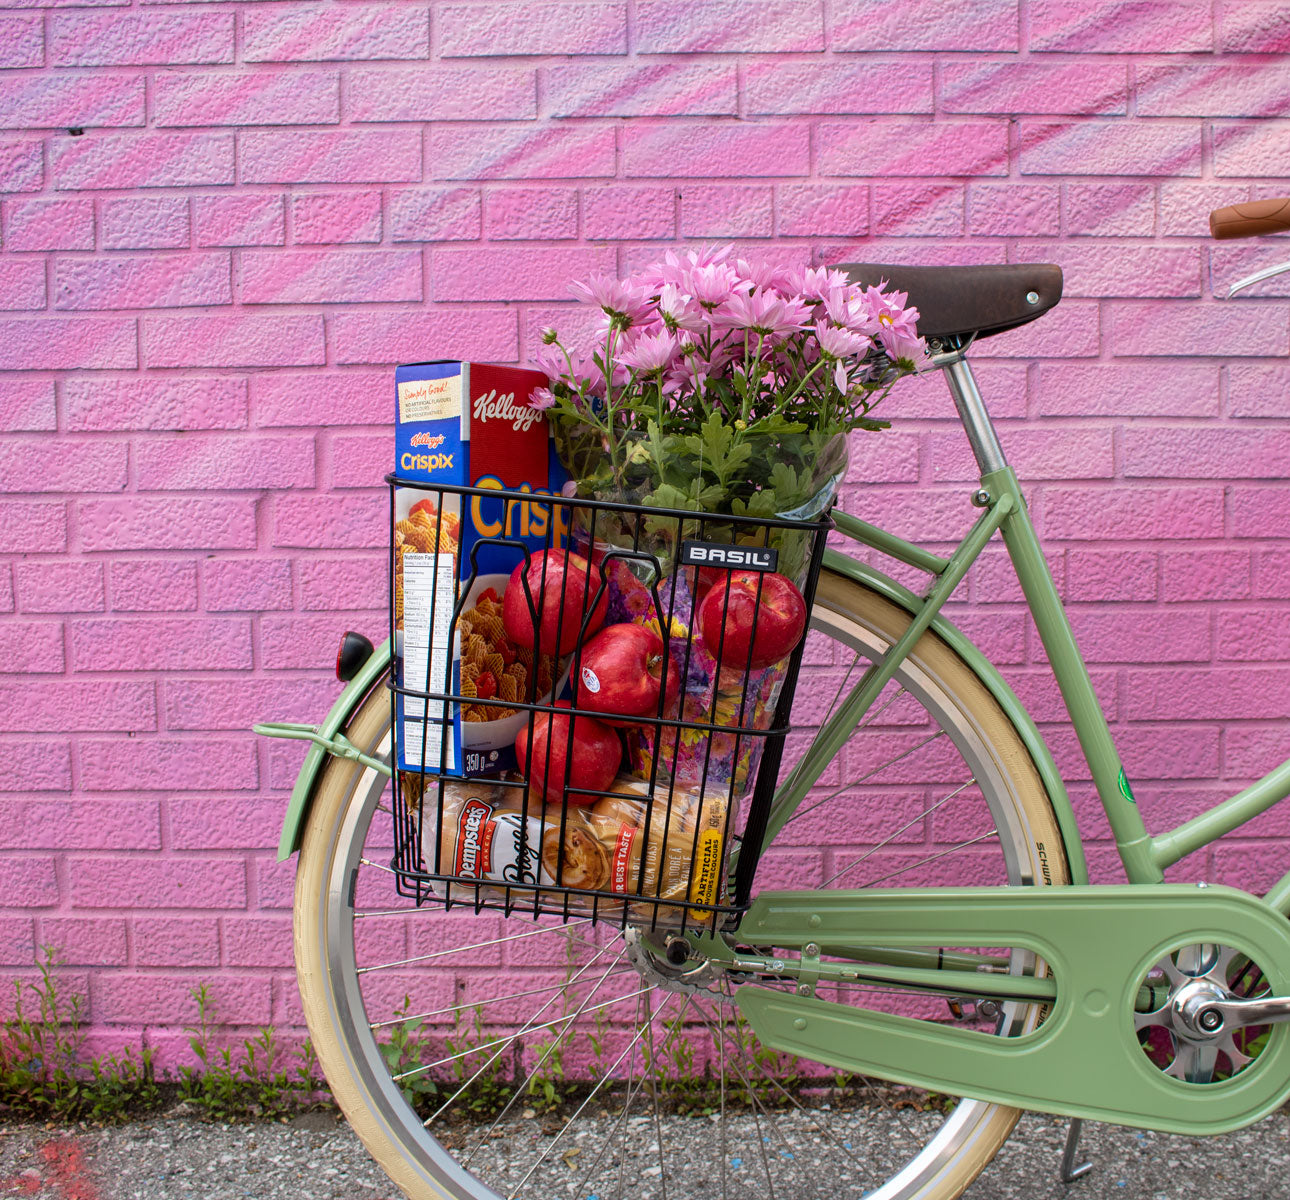 53d2b5d199e Basil-Bottle-Basket-Black-Lifestyle-Groceries-Pink-Background-Curbside-Cycle .jpg?v=1561394297